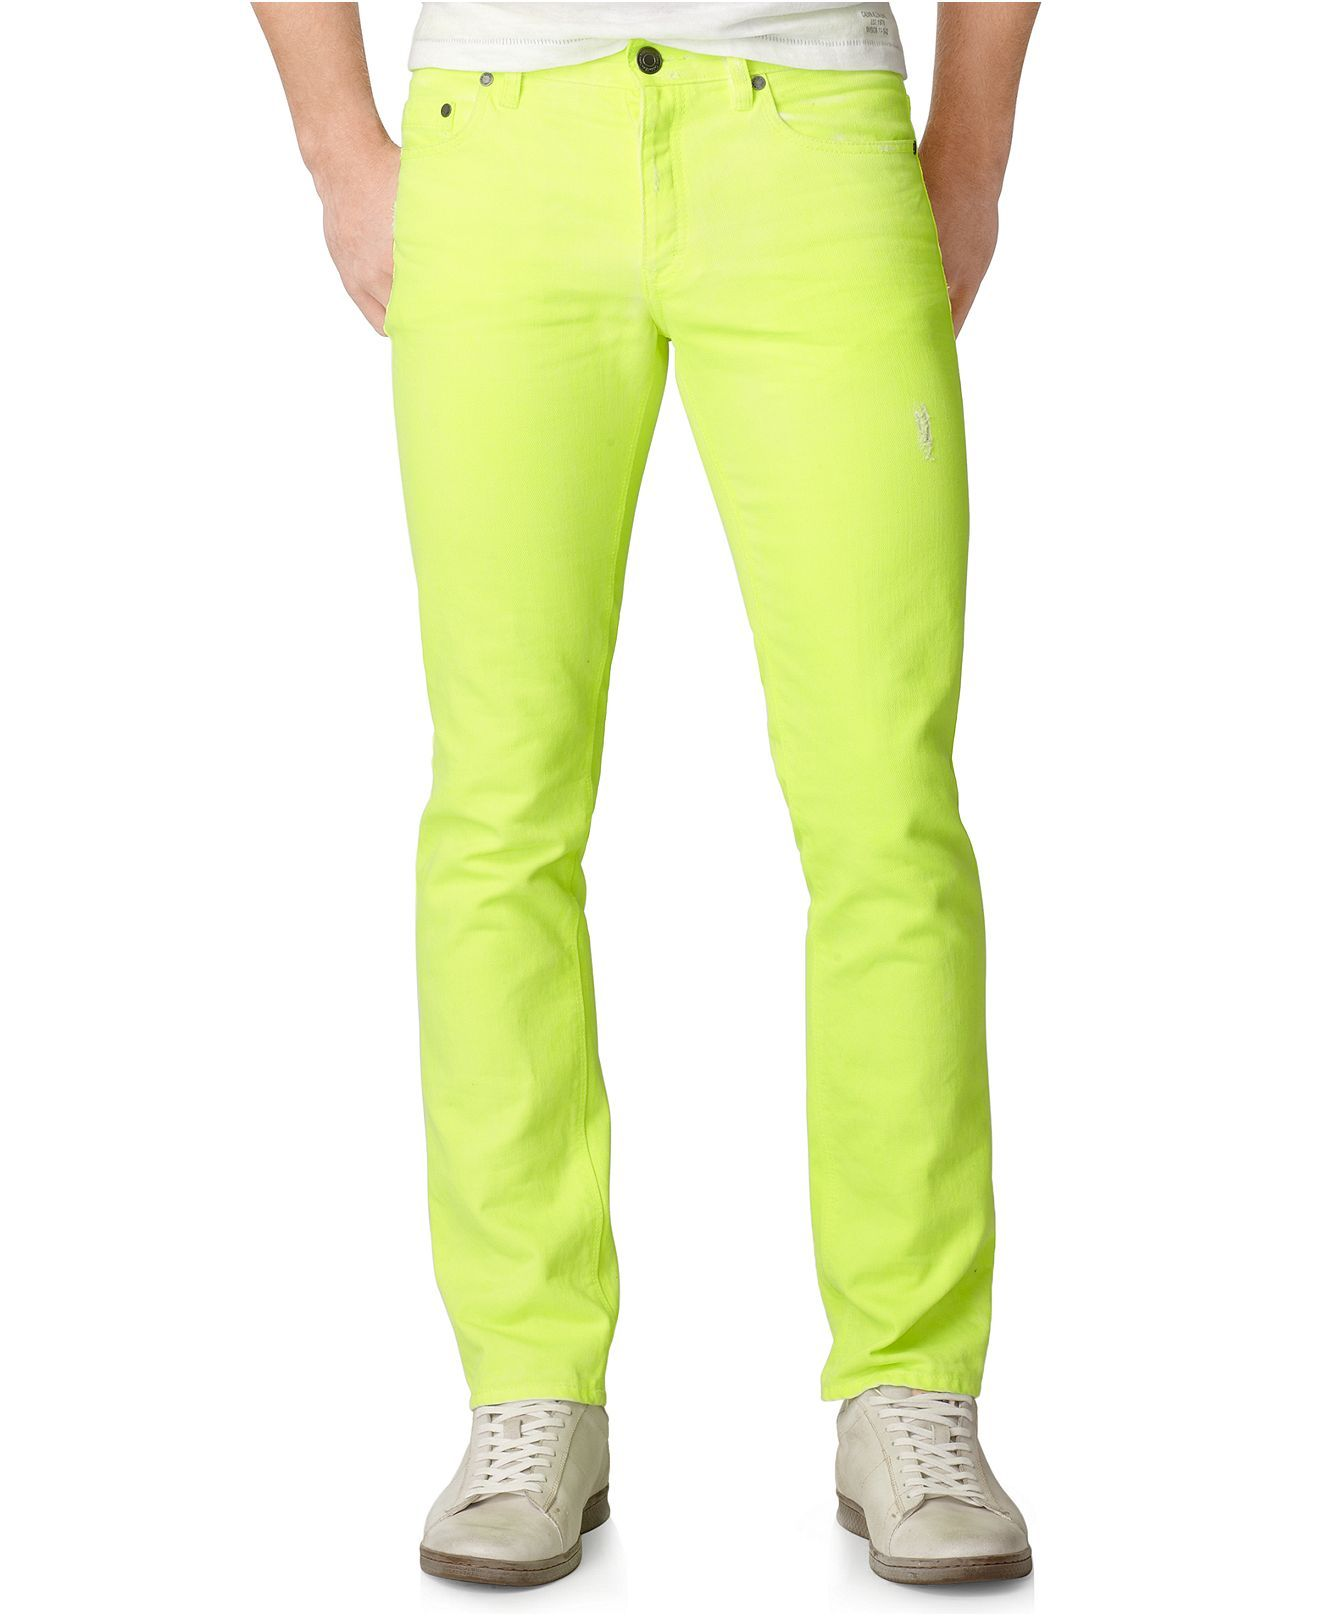 Green Mint skinny jeans macys pictures advise to wear for everyday in 2019